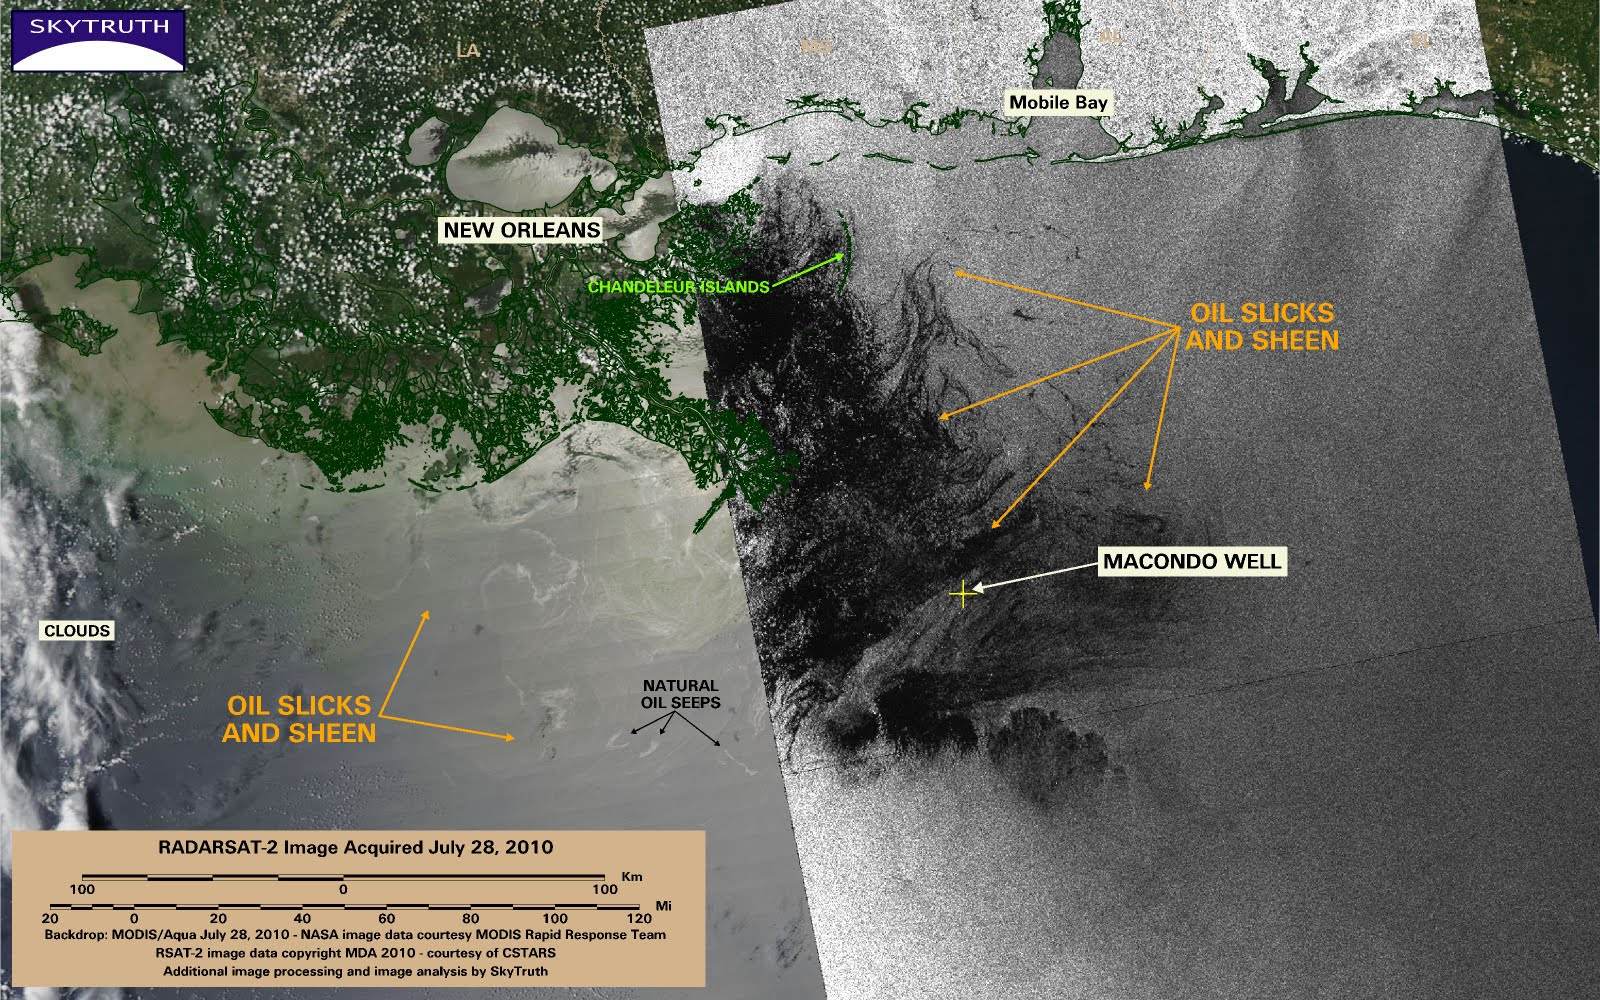 BP Gulf Oil Spill Satellite Image July 28th 2010 With Infrared Analysis